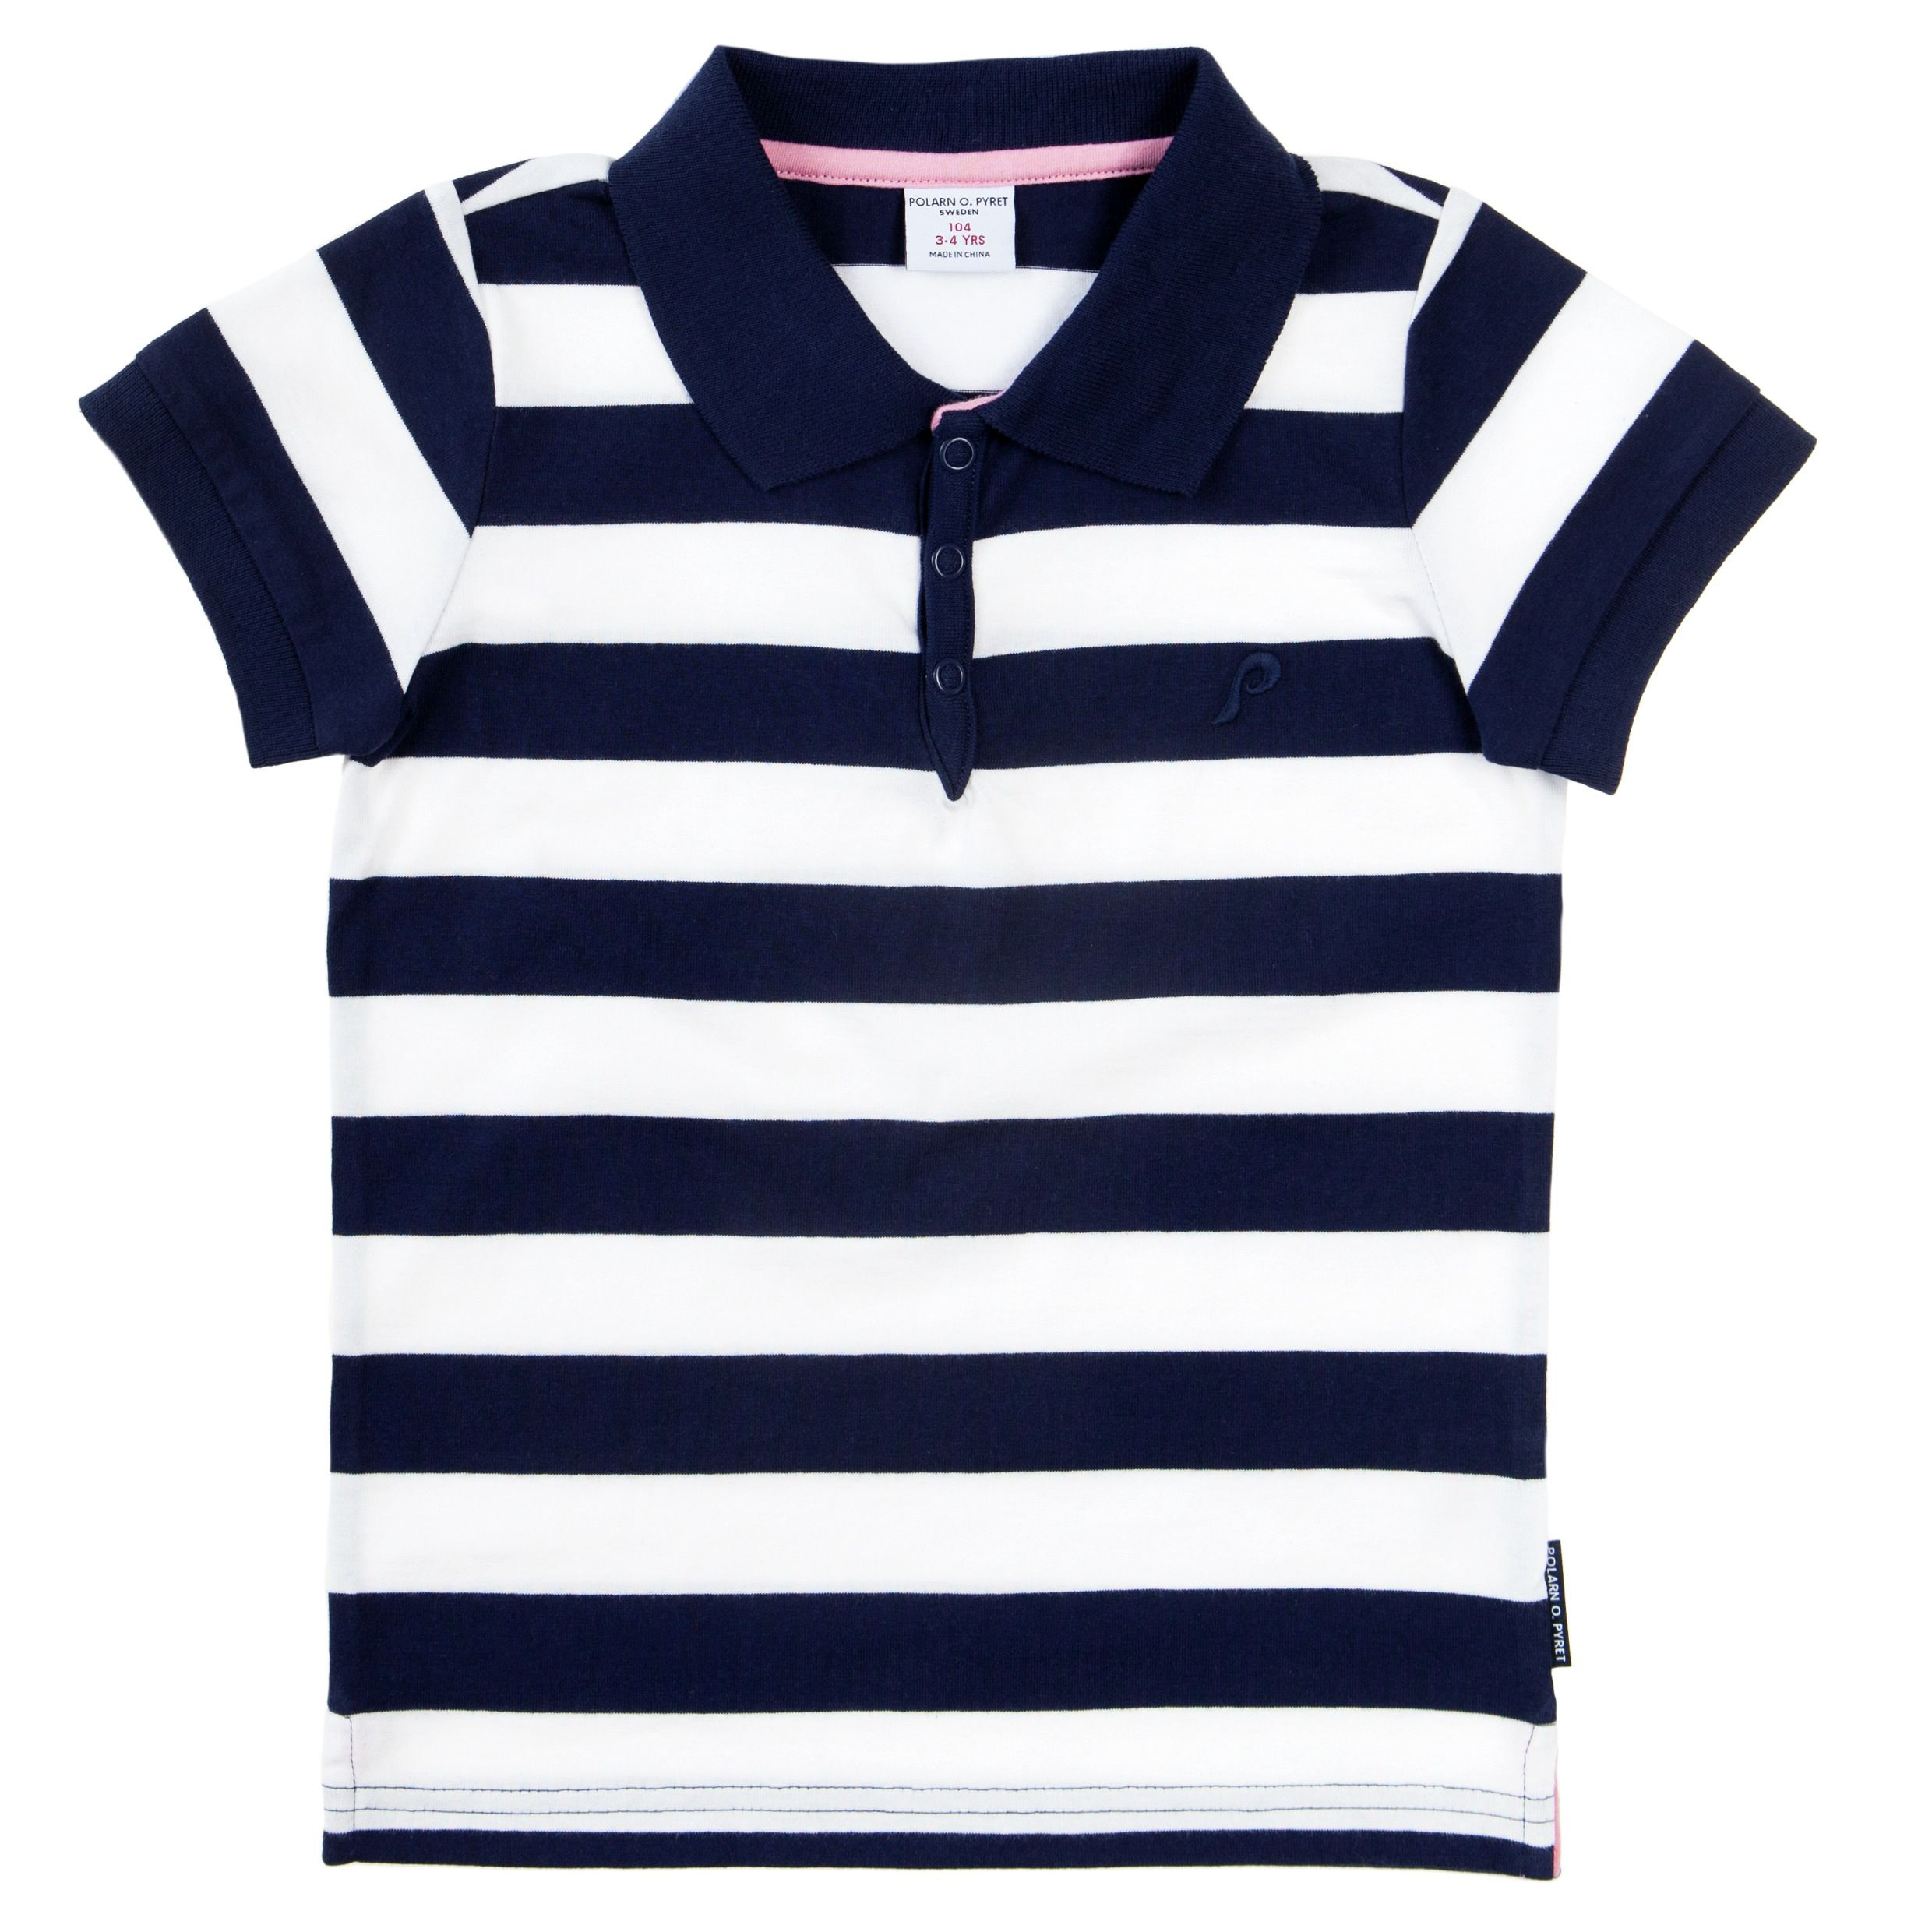 Babys striped polo shirt